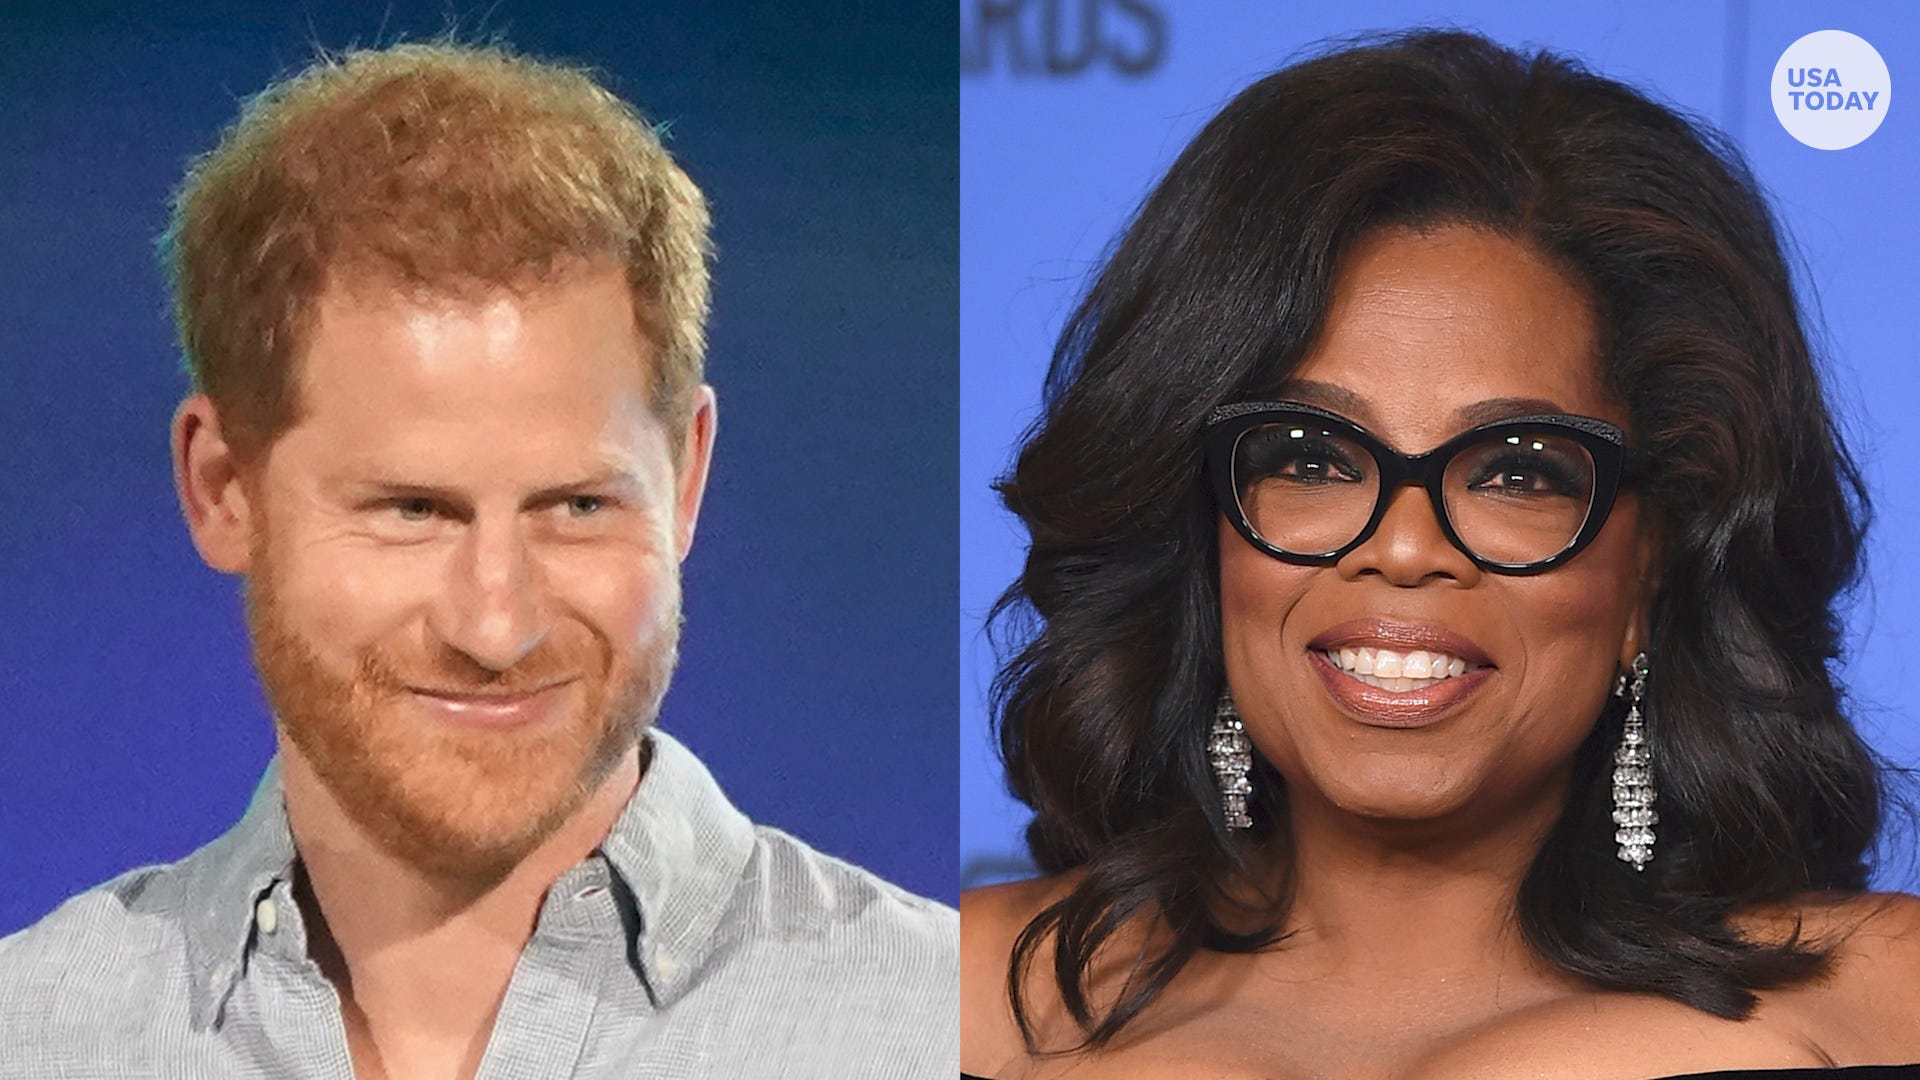 Prince Harry and Oprah reunite for a town hall on mental health